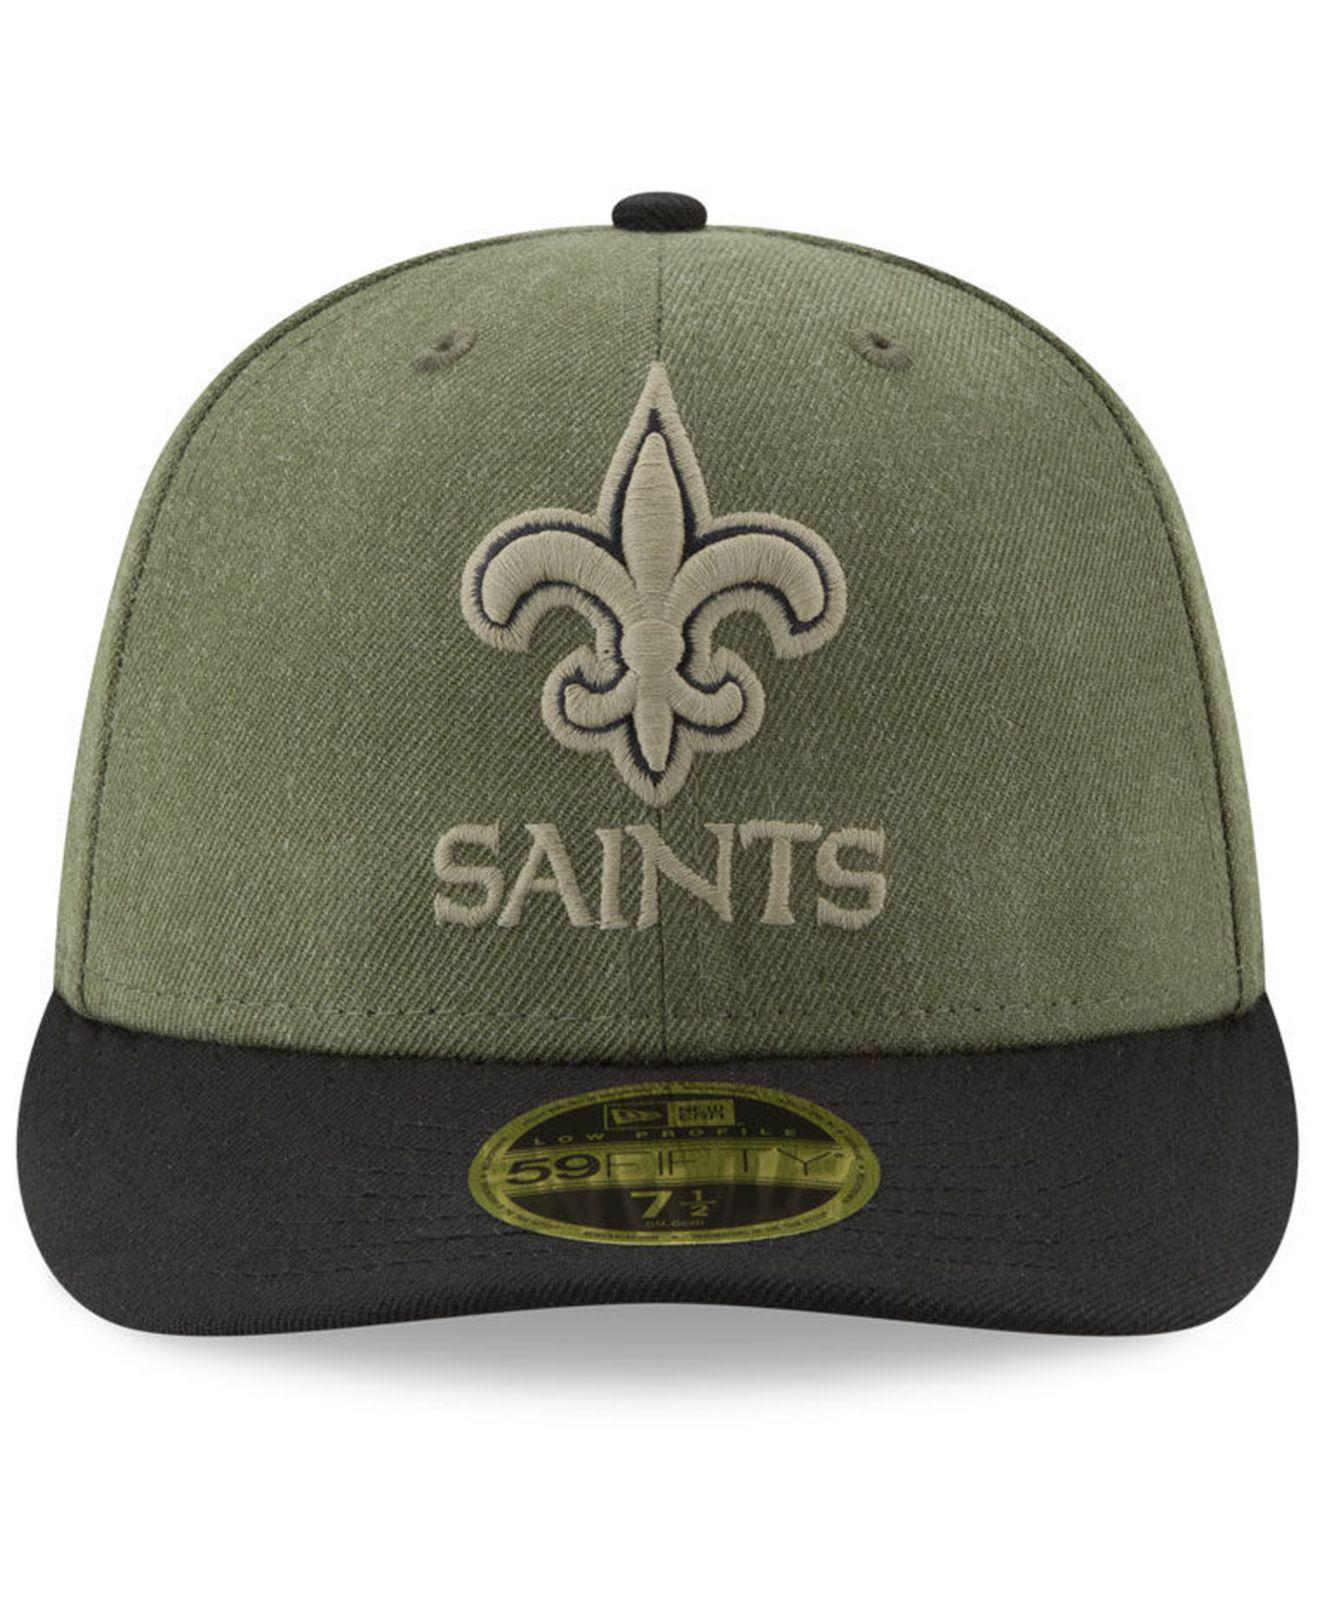 Lyst - KTZ New Orleans Saints Salute To Service Low Profile 59fifty Fitted  Cap 2018 in Green for Men 4689ae631